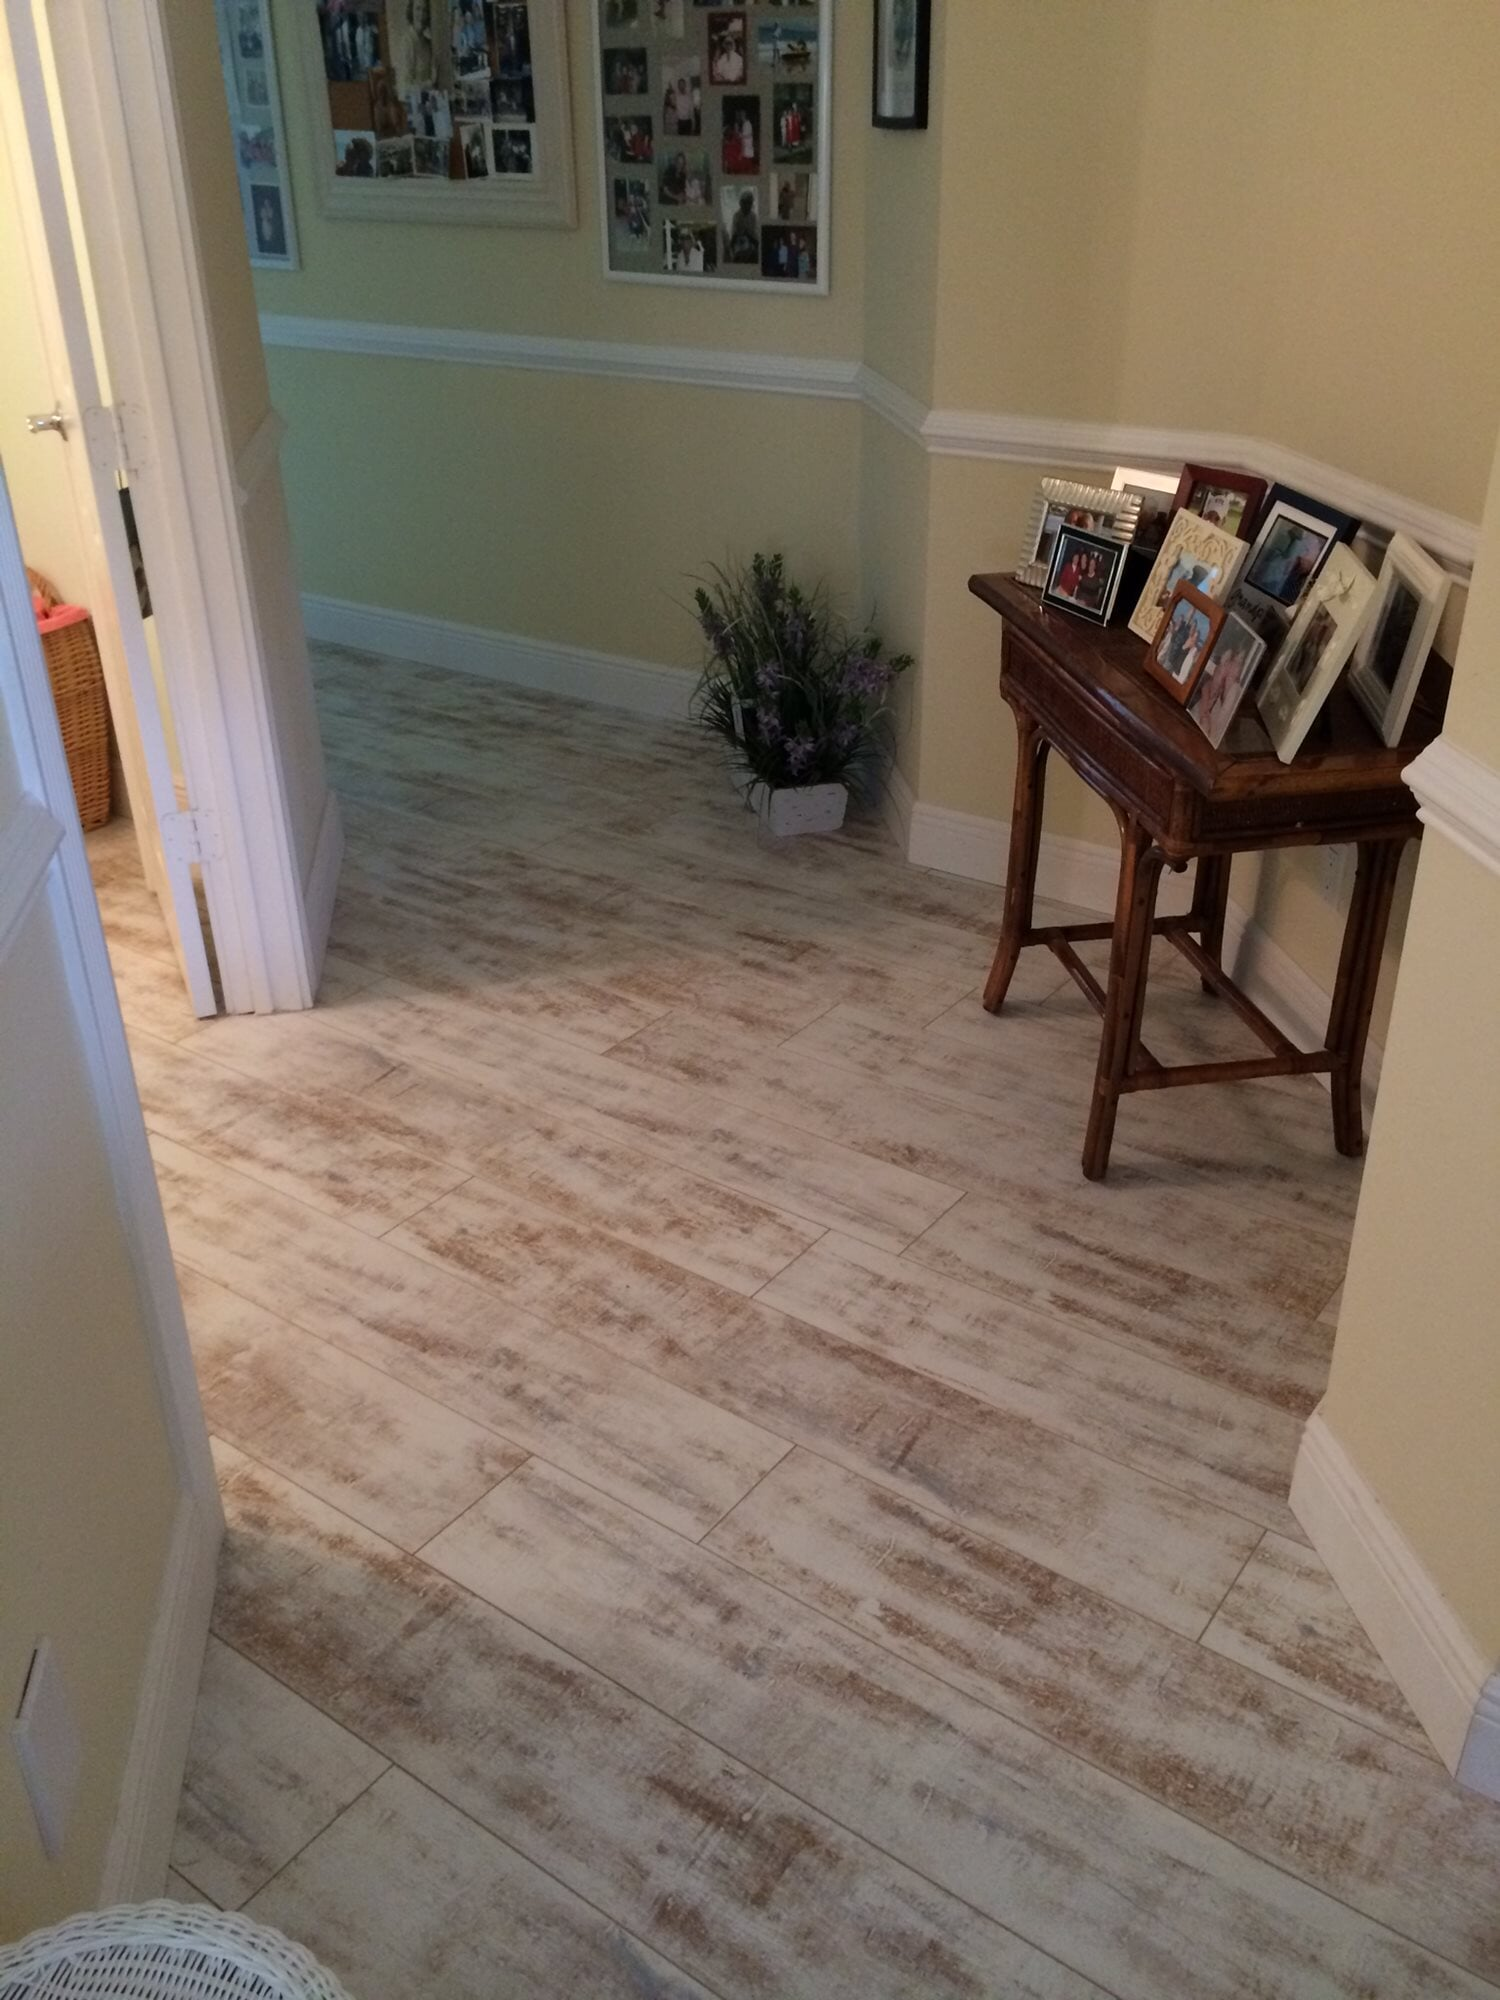 Rustic wood look tile in Juno Beach, FL from Floors For You Kitchen & Bath